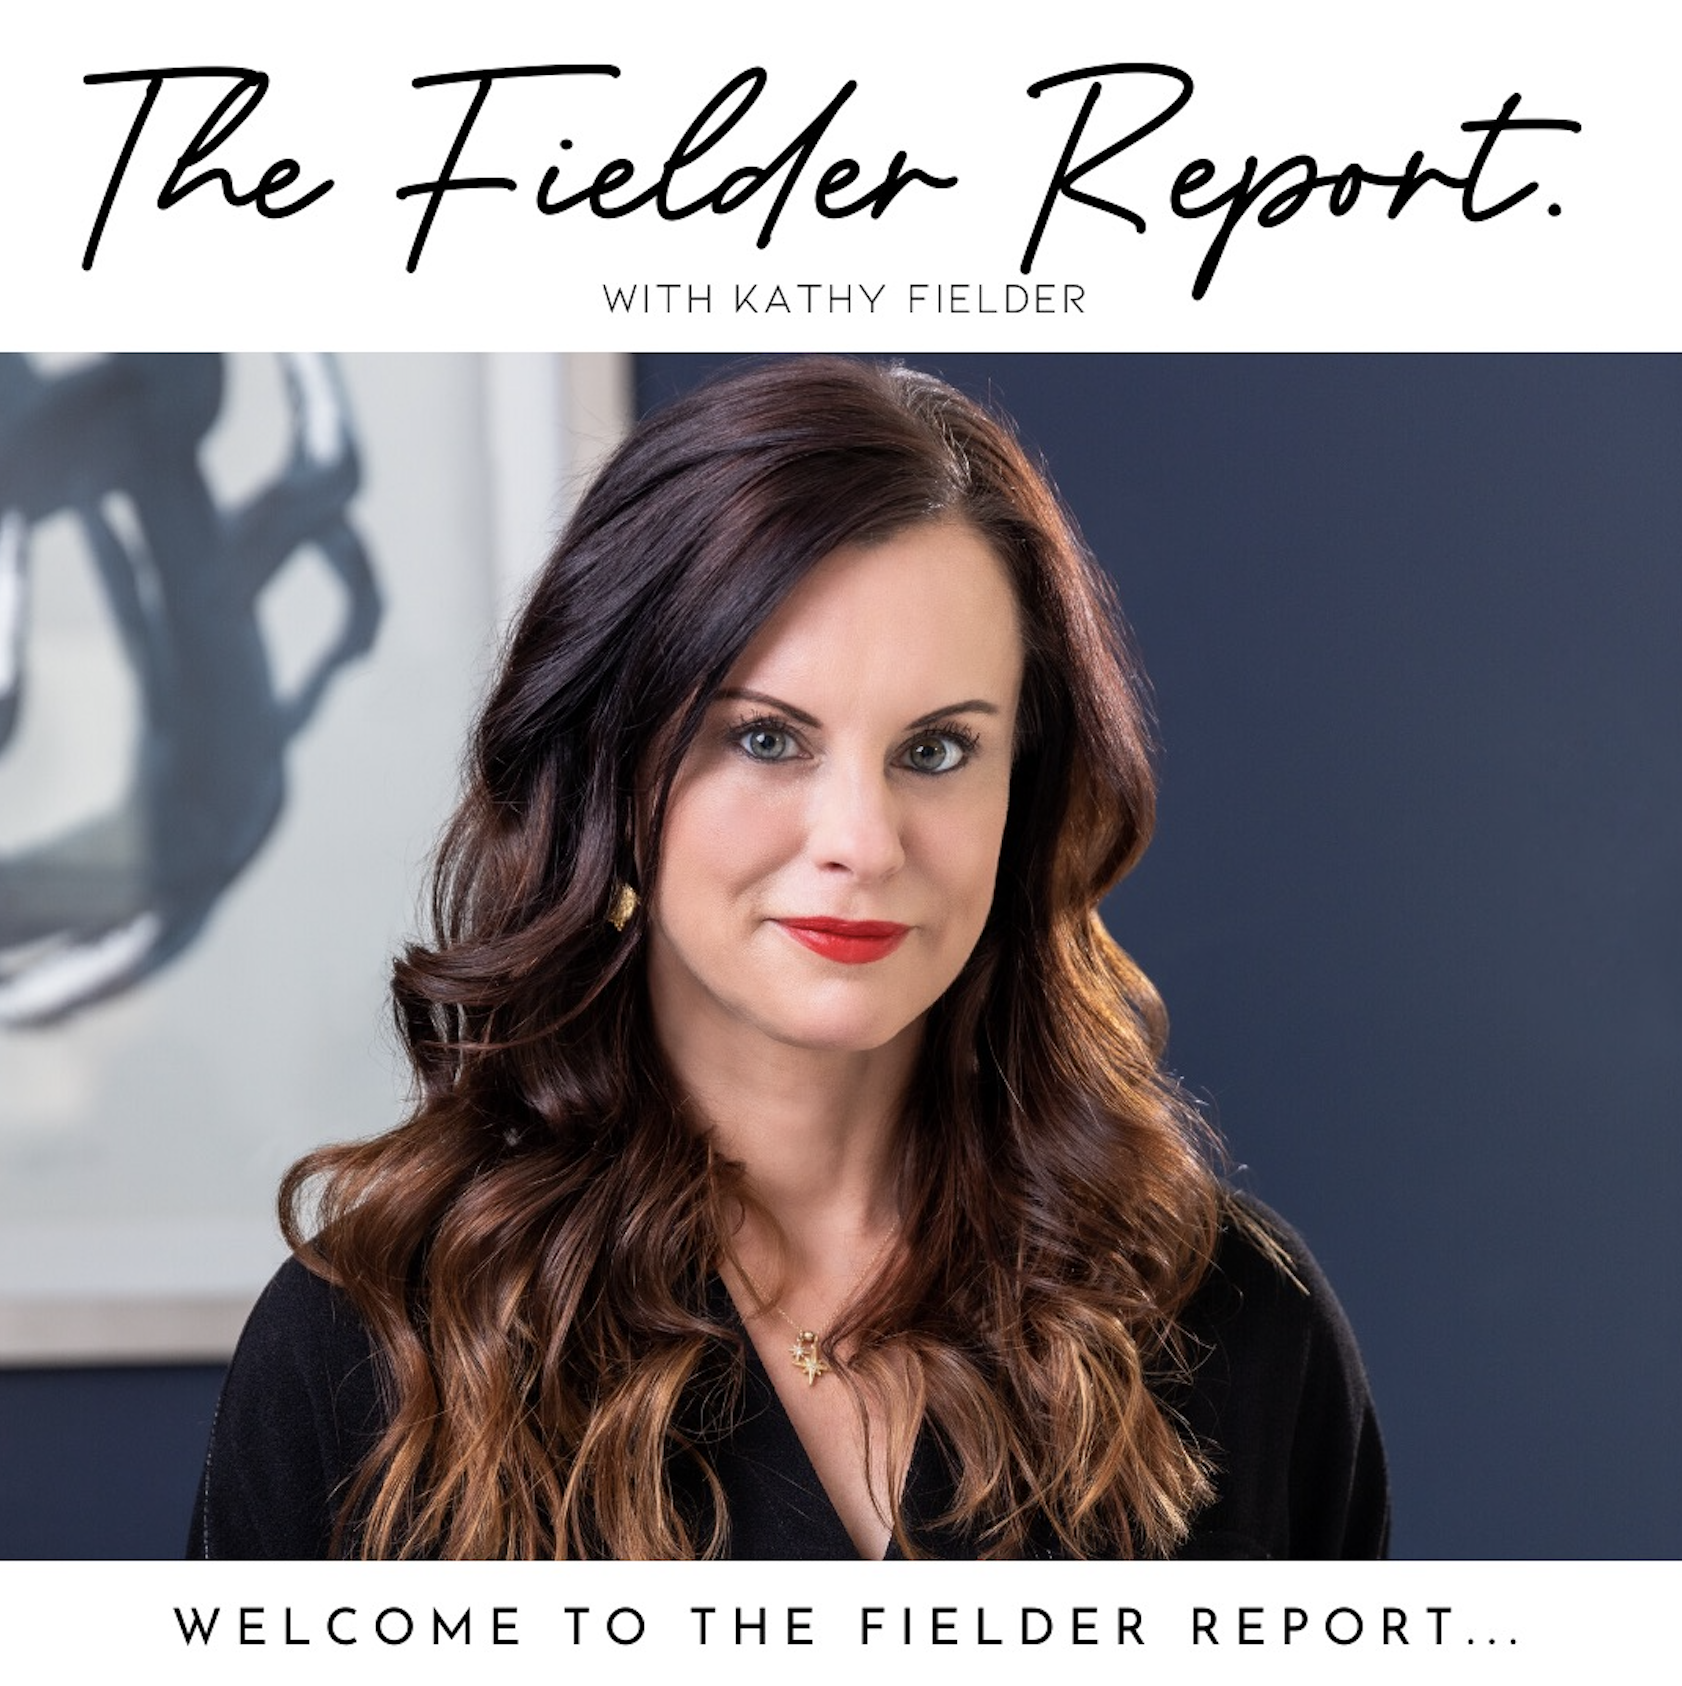 The Fielder Report by Kathy Fielder Podcast is here. Listen everywhere Spotify, Apple Podcasts, Google Podcasts, I Heart Radio